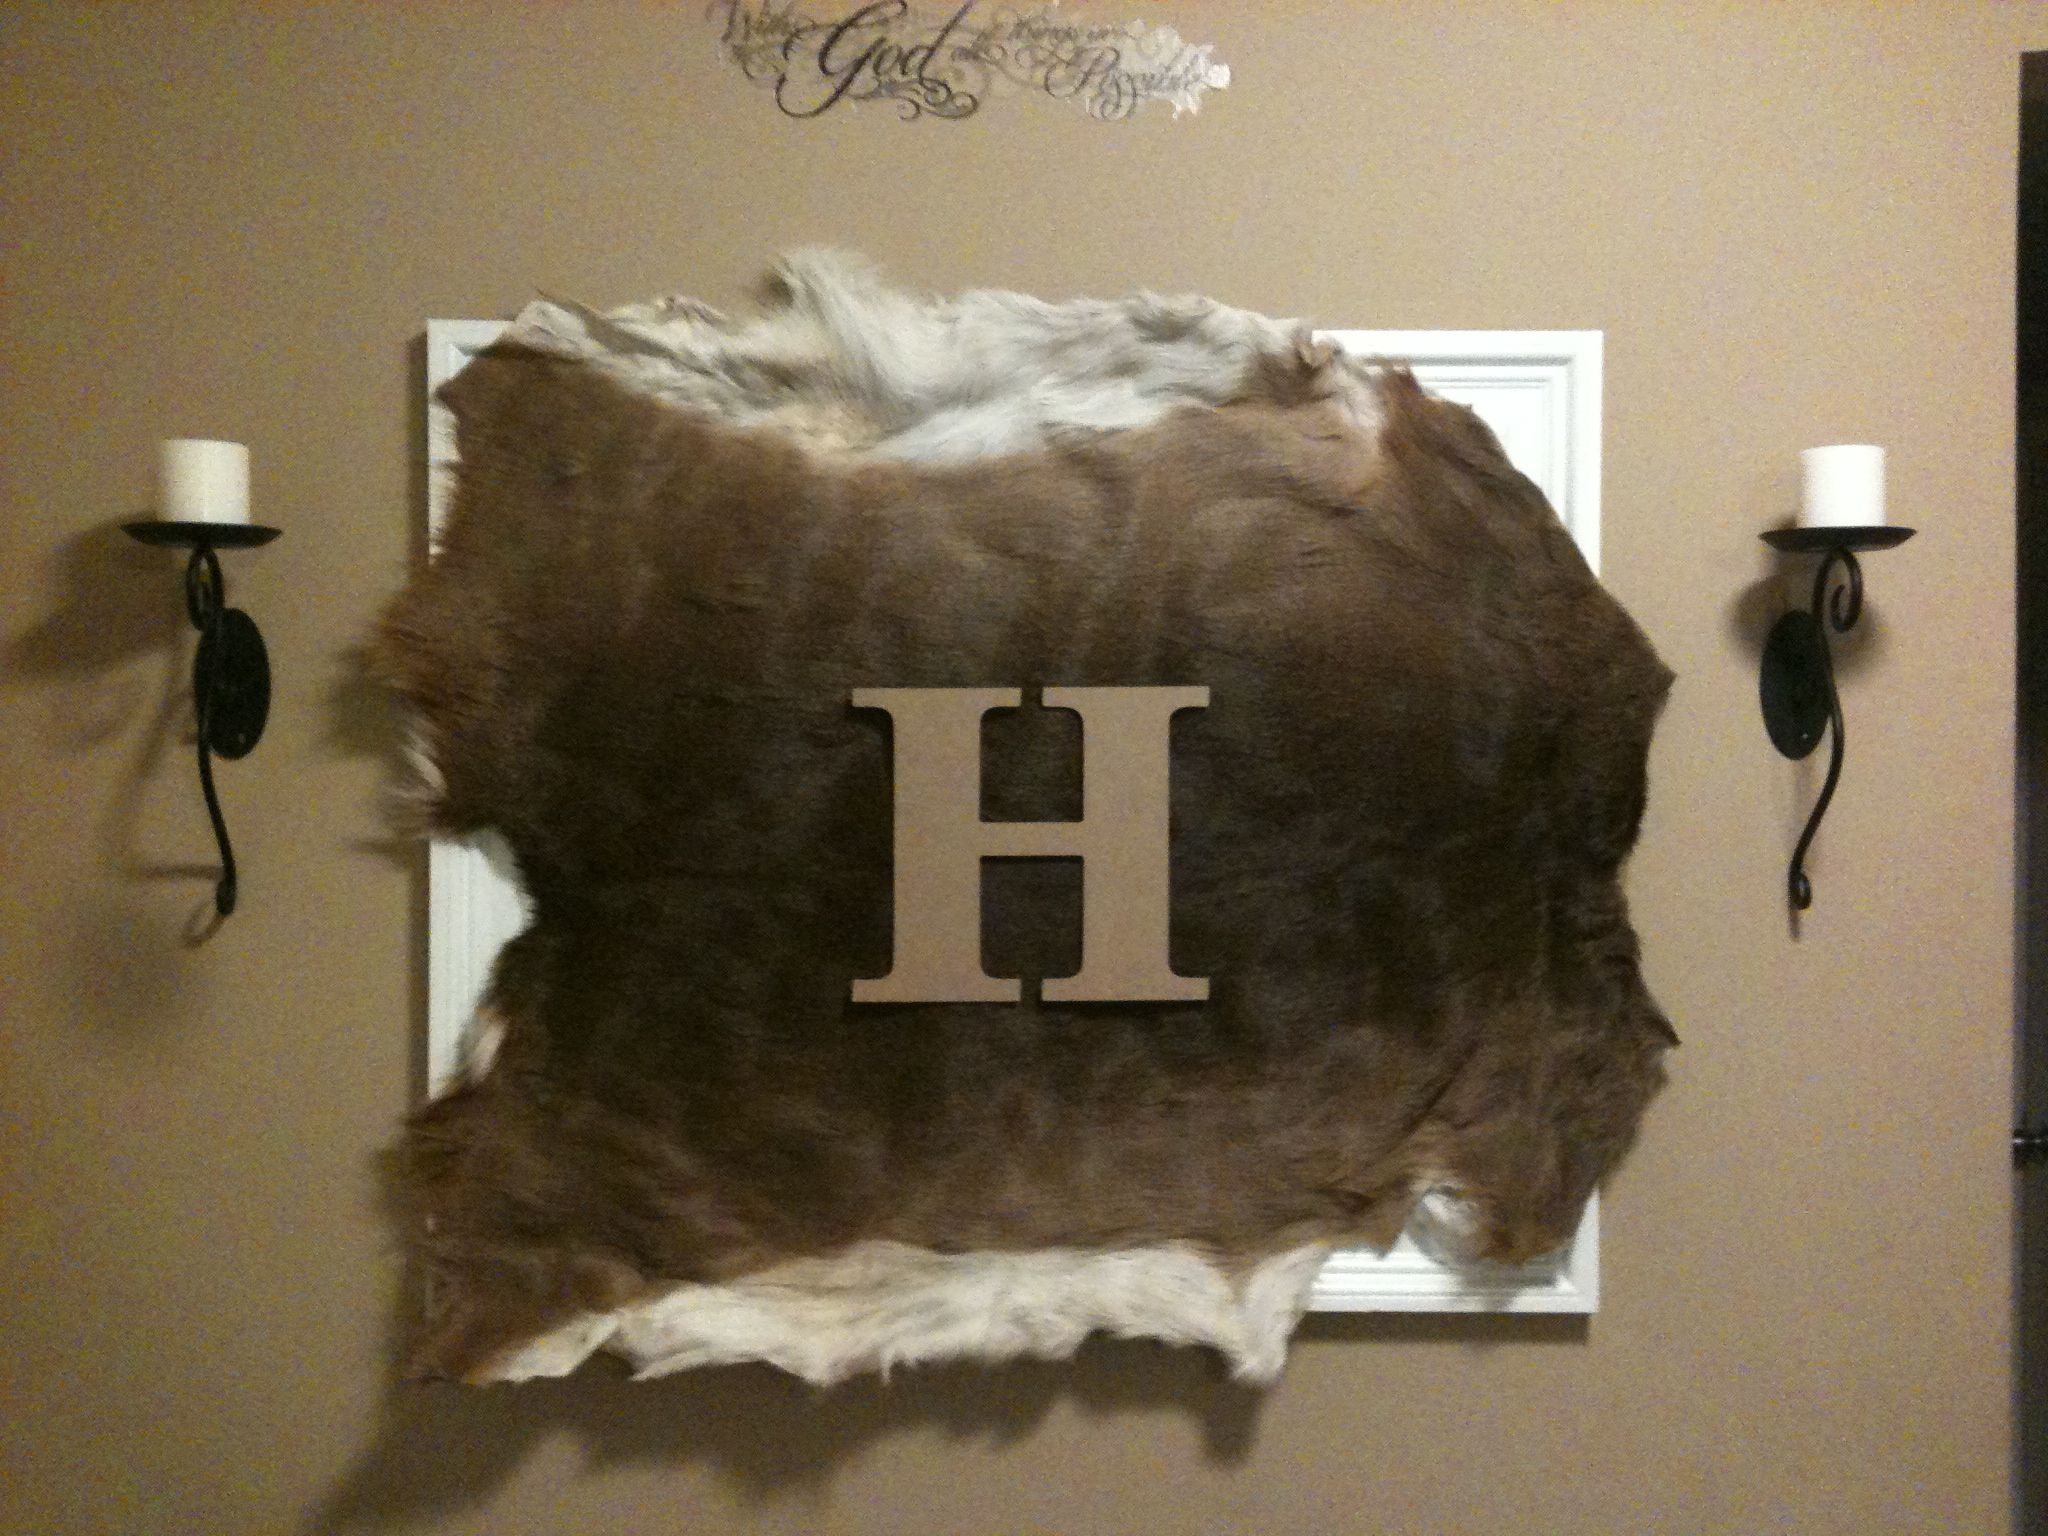 Deer Skin Mounted On Frame With Monogram A Unique Way To Integrate Your Hubby S Hunting Trophy The Decor